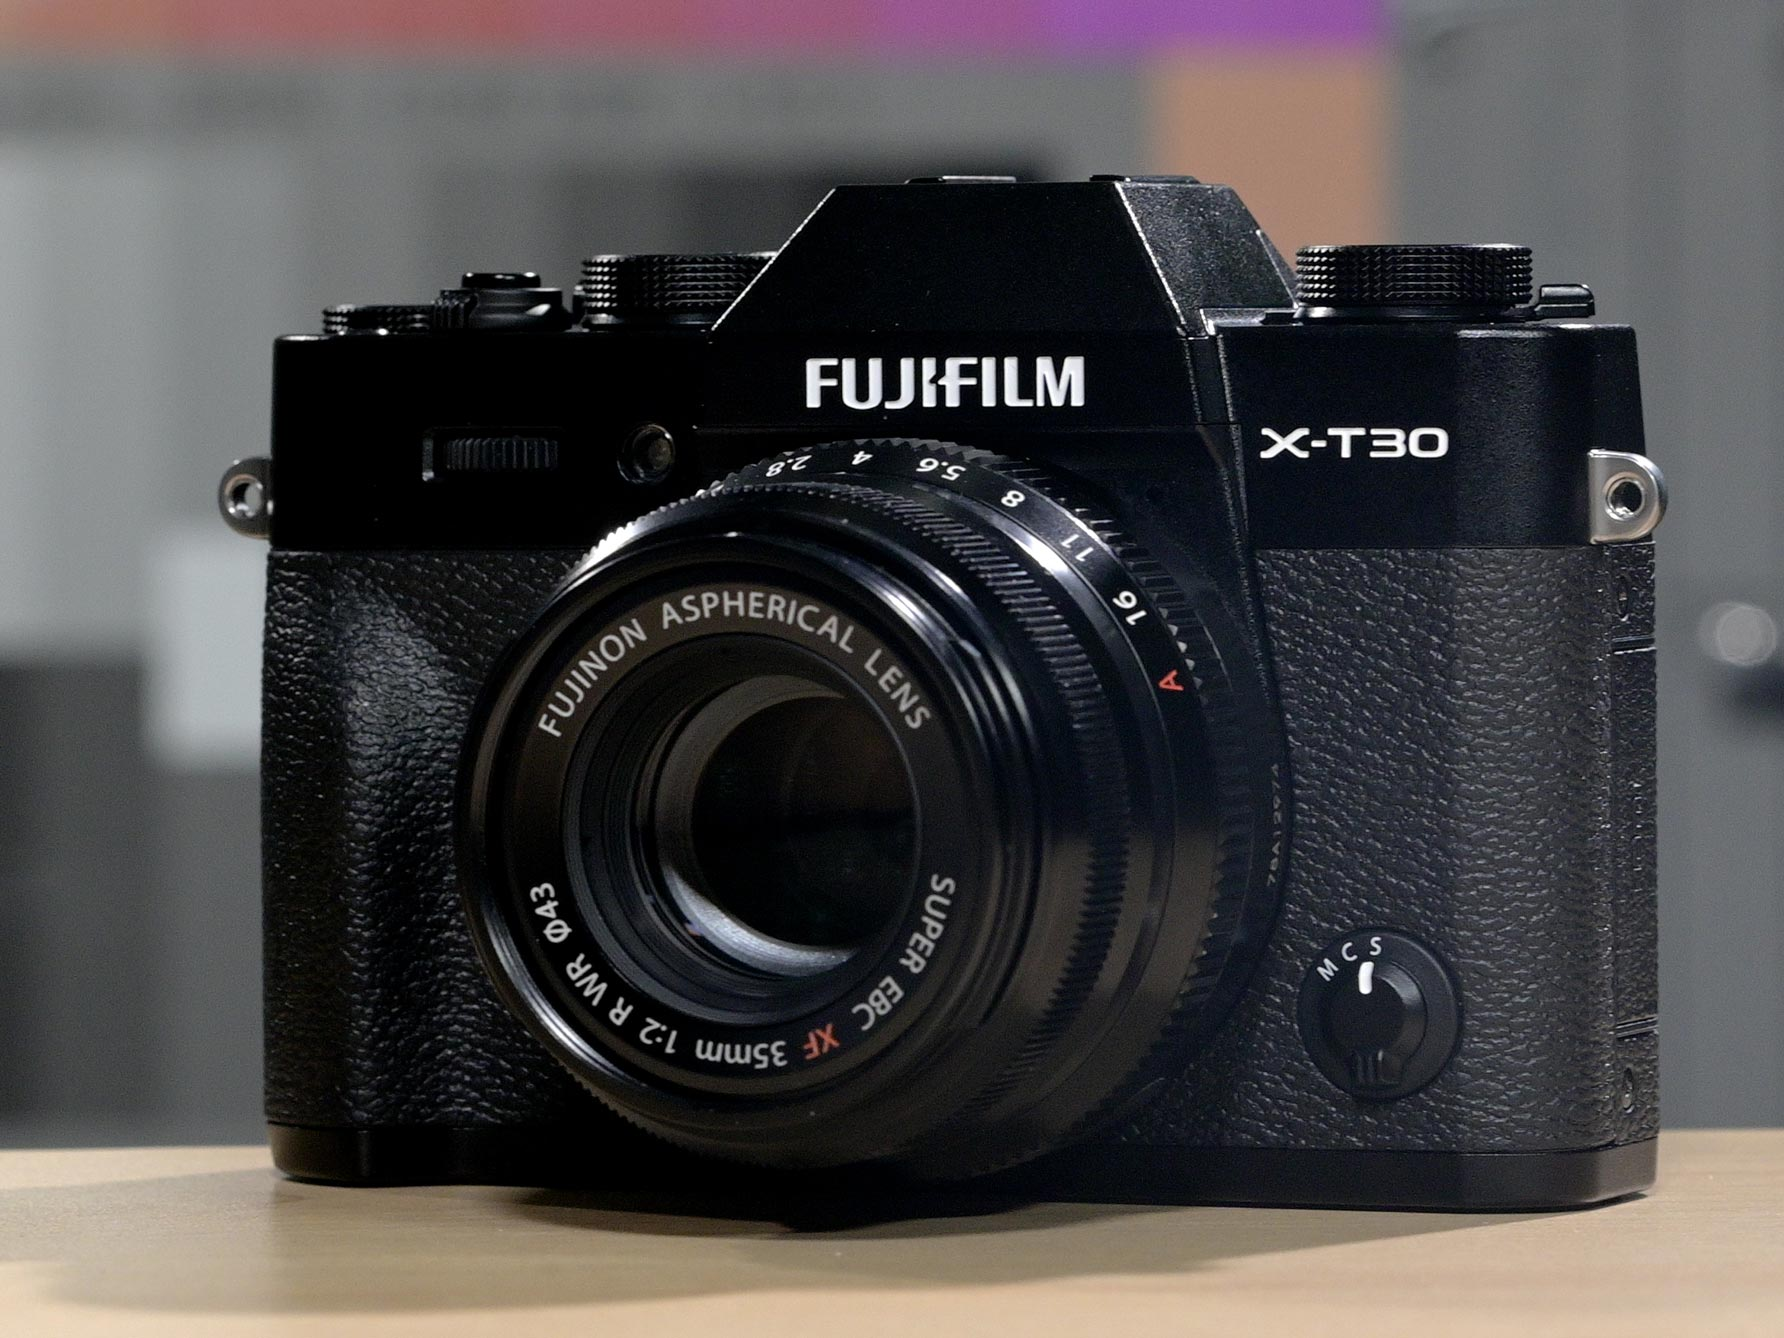 Fujifilm X-T30 review: Great for video, not perfect - Videomaker